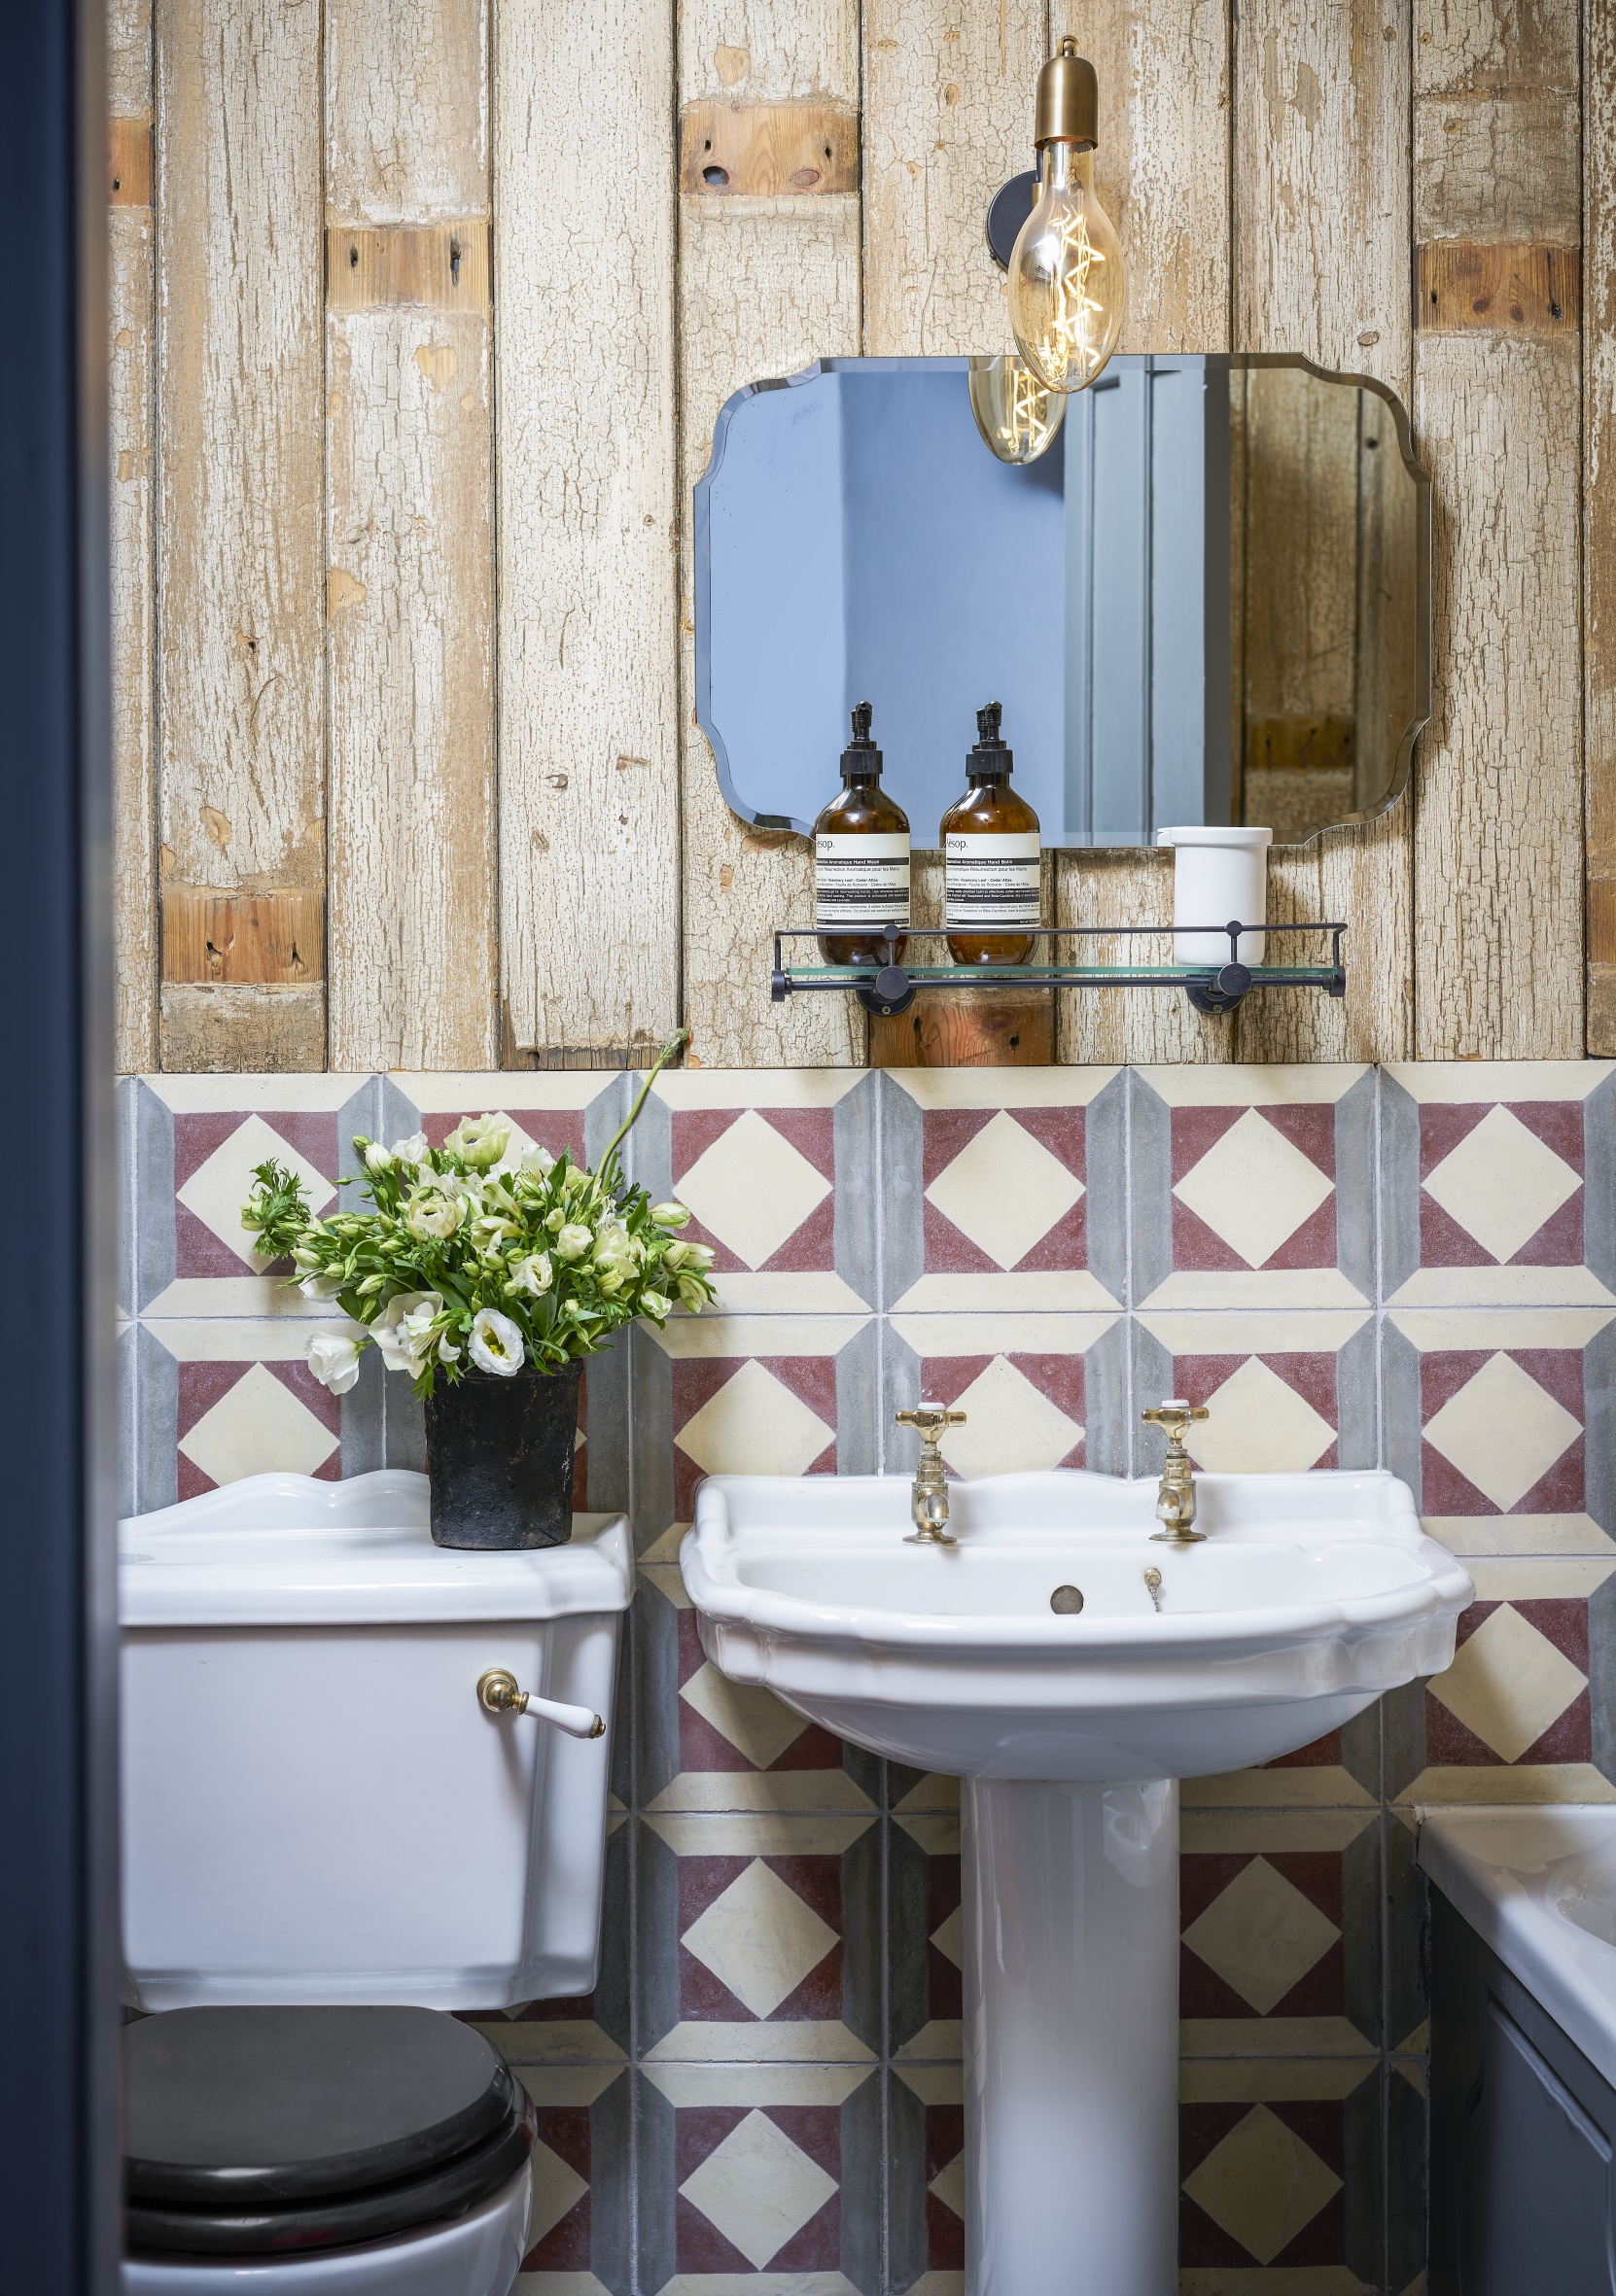 Small Bathroom Tile Ideas 12 Ways To Mimic A Spacious Bathroom Real Homes,Wedding Simple New Blouse Designs Images